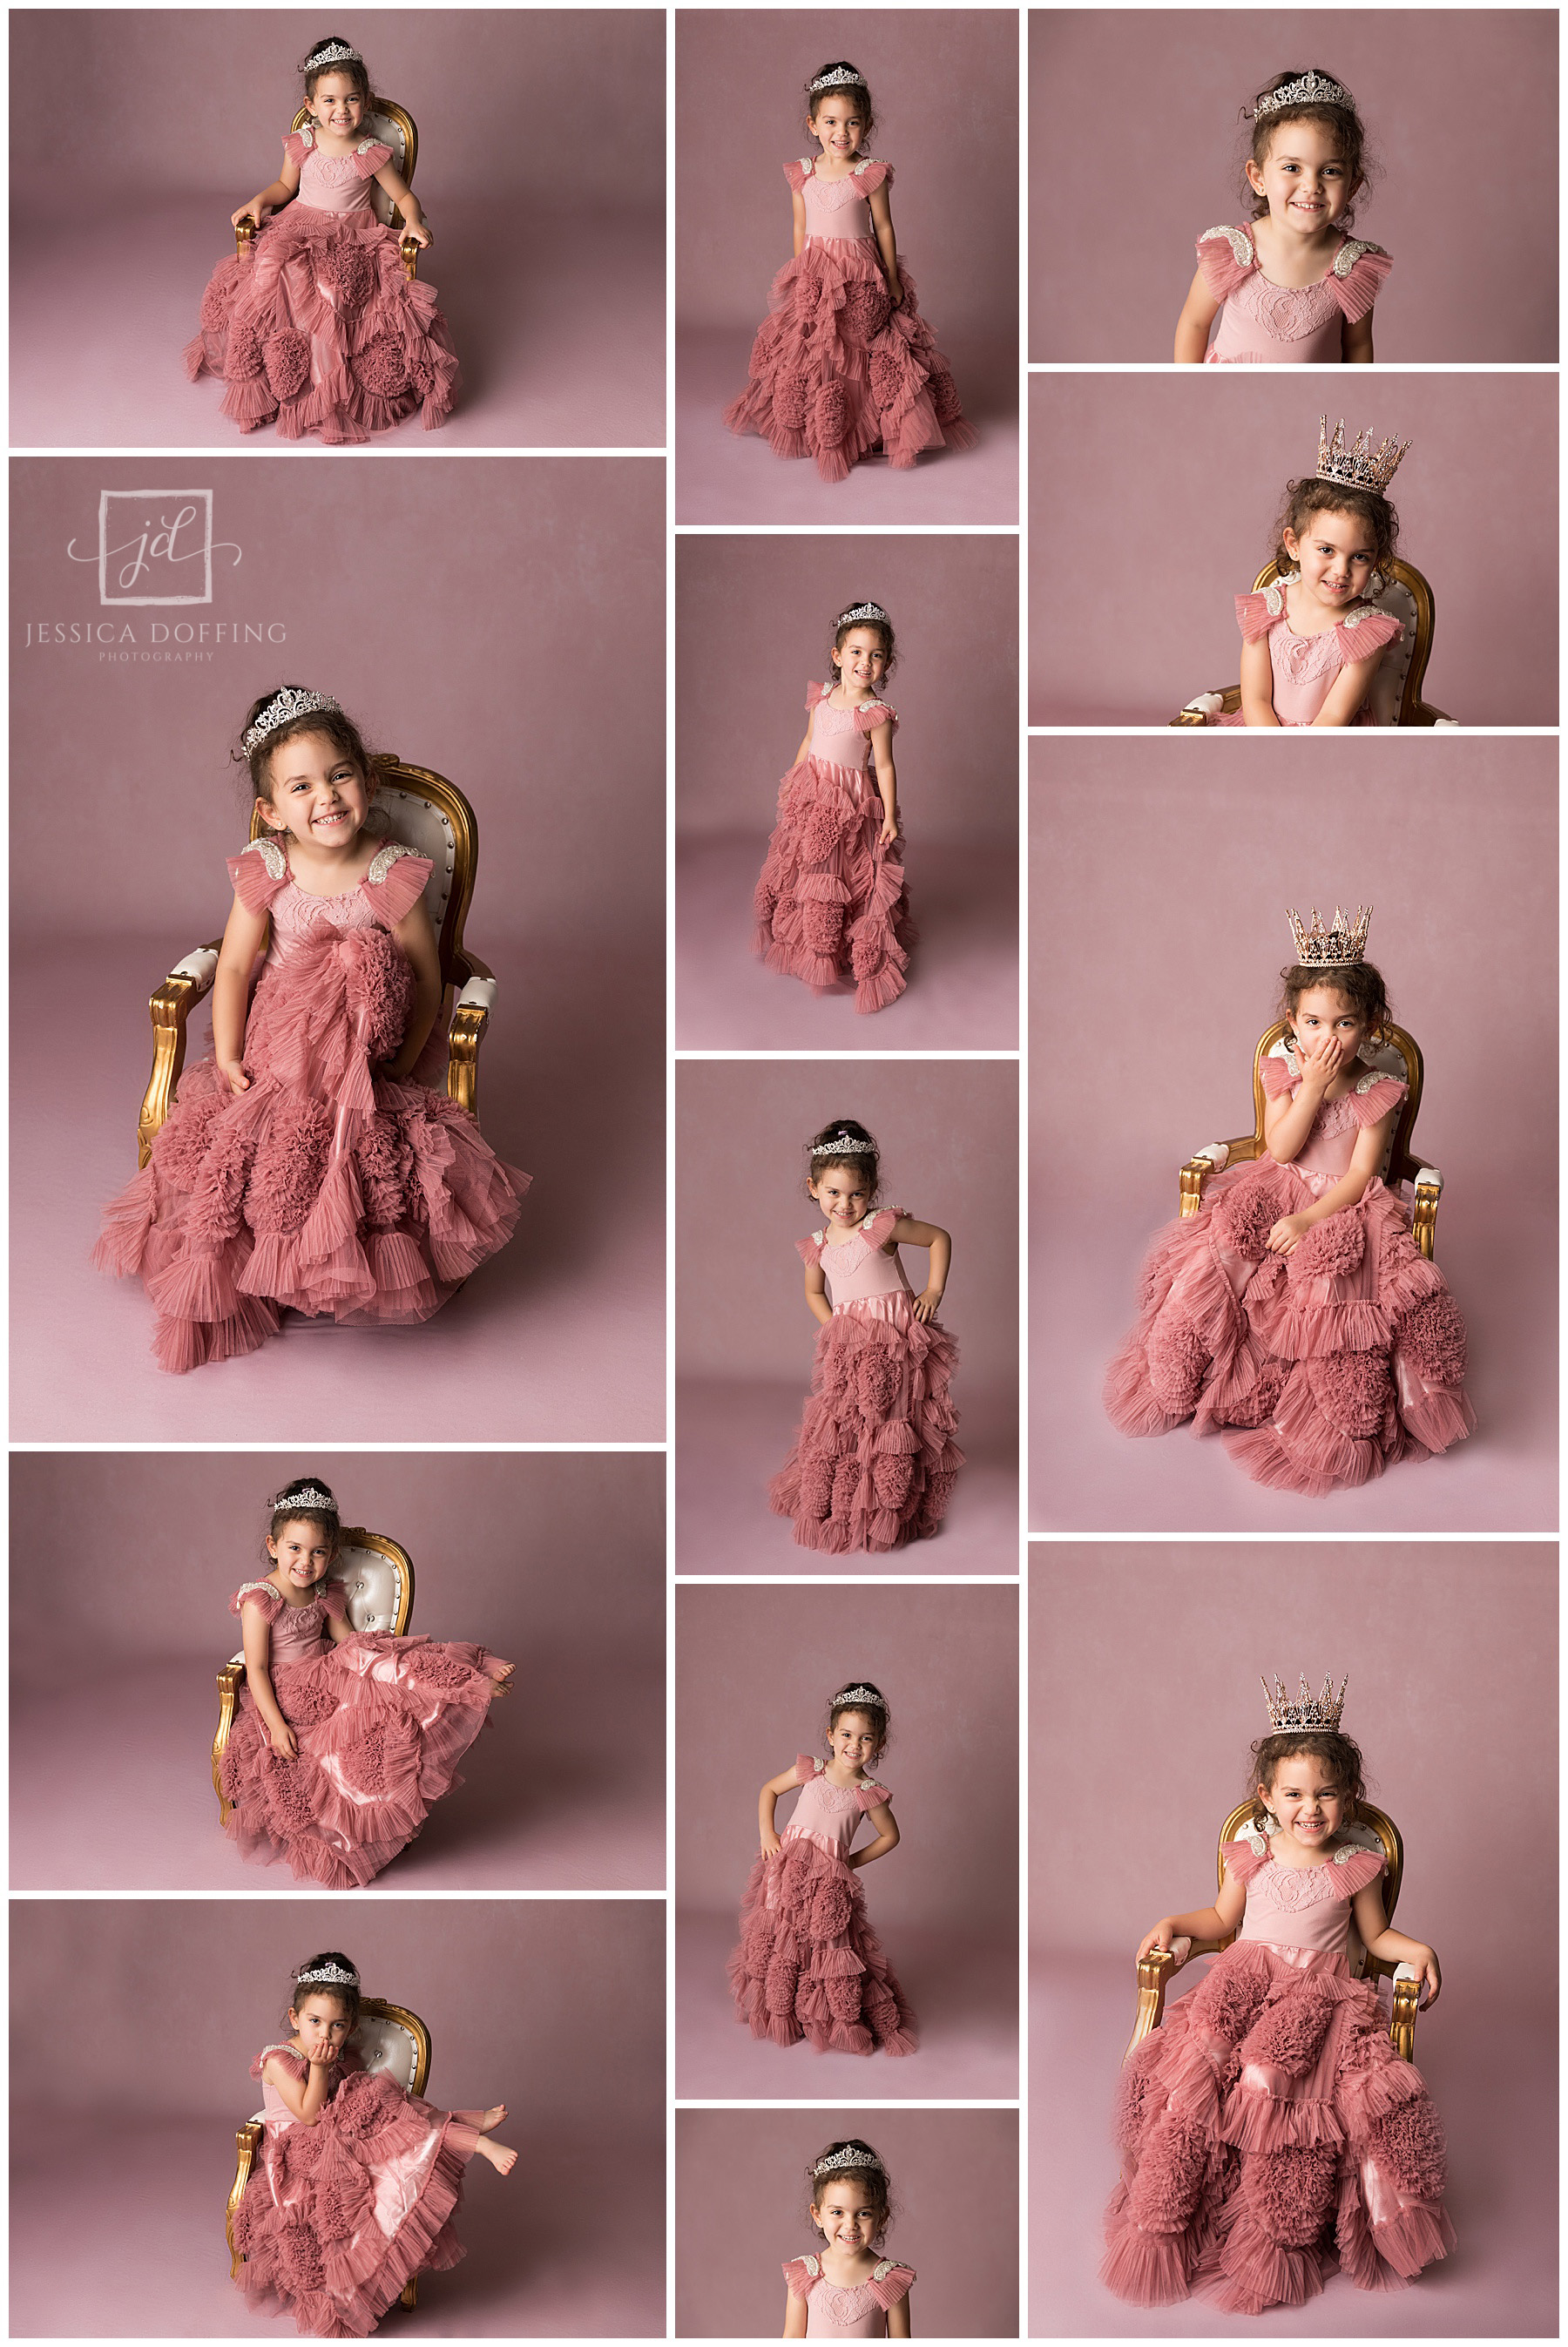 pink princess photo shoot